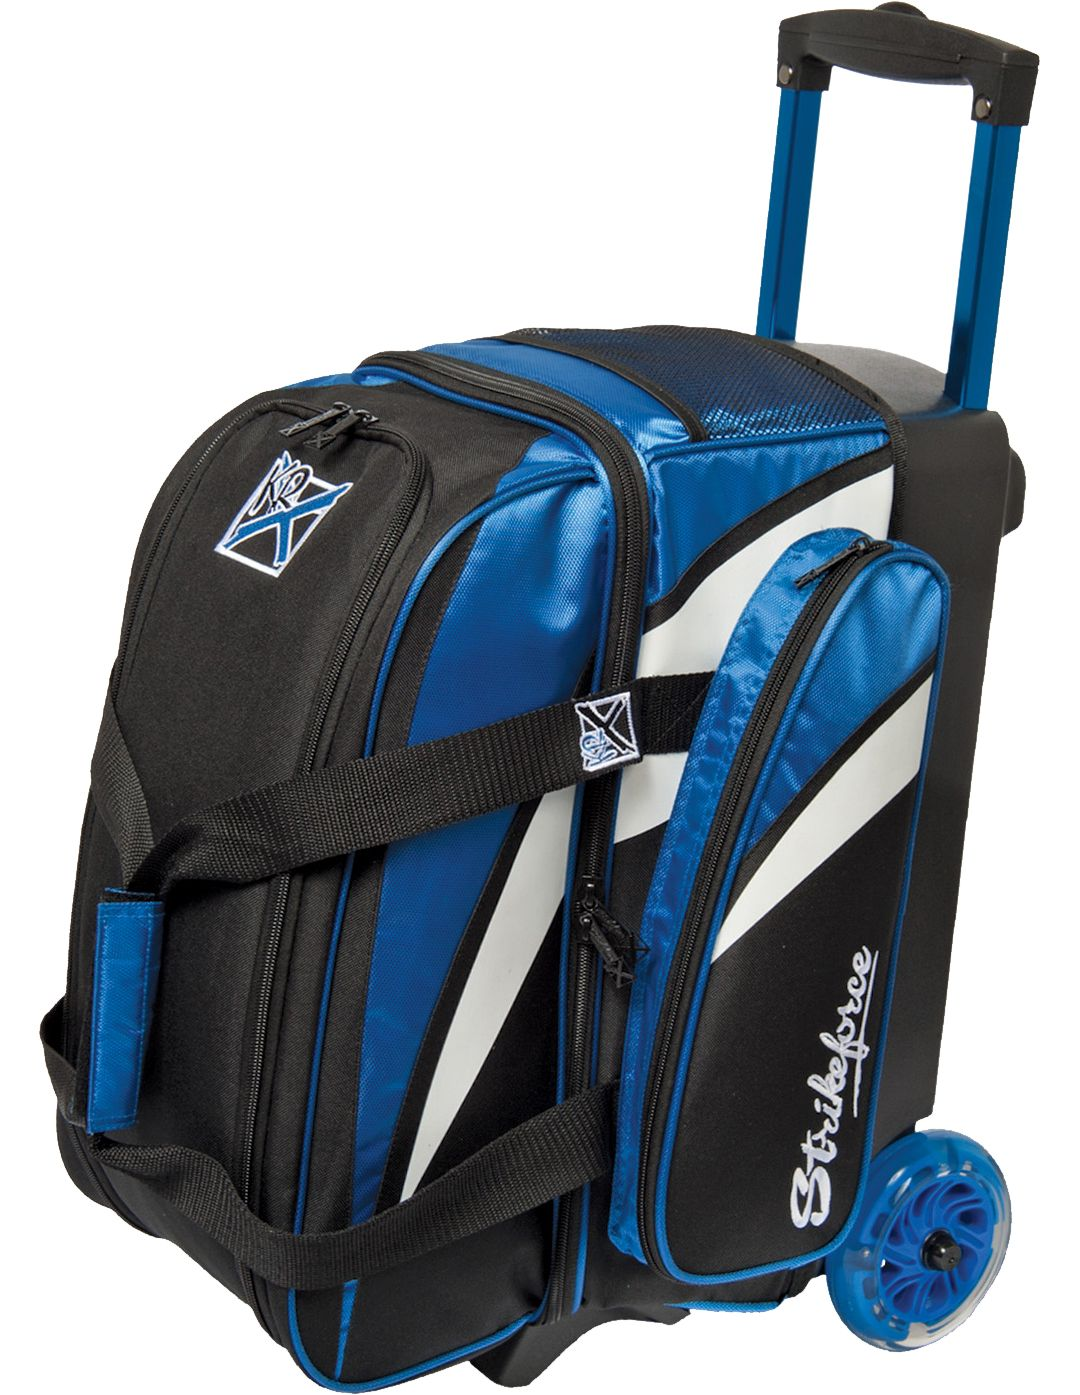 Kr Strikeforce Cruiser Smooth 2 Ball Roller Bowling Bag